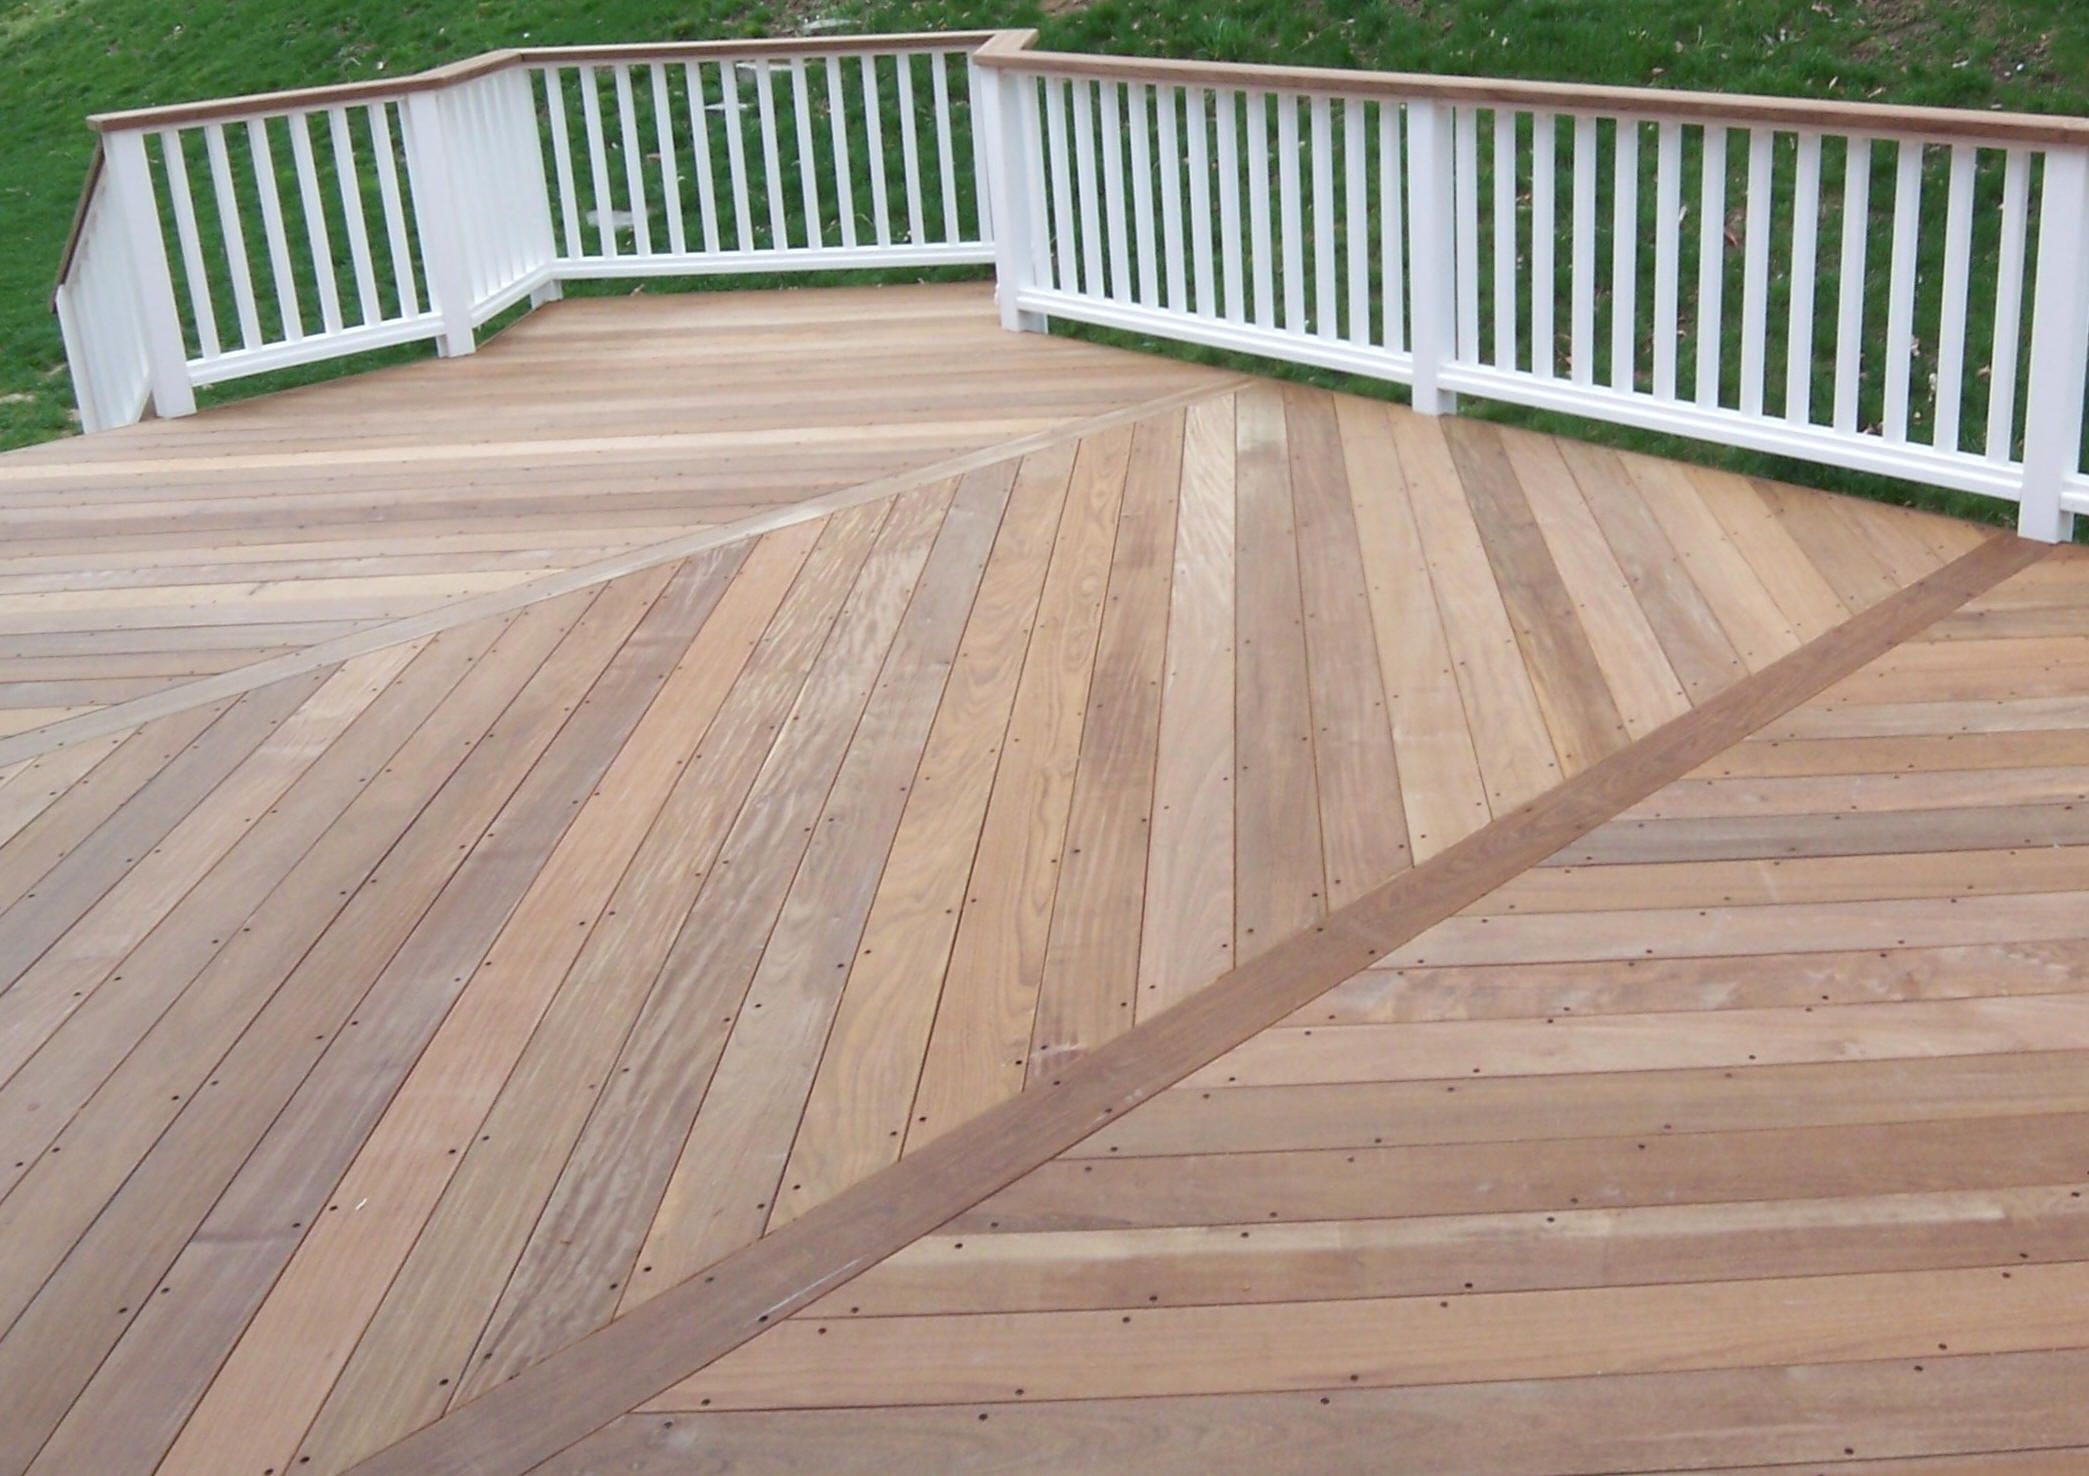 Sealing or oiling ipe decks ipe deck 3 bays herringbone for 3 bays